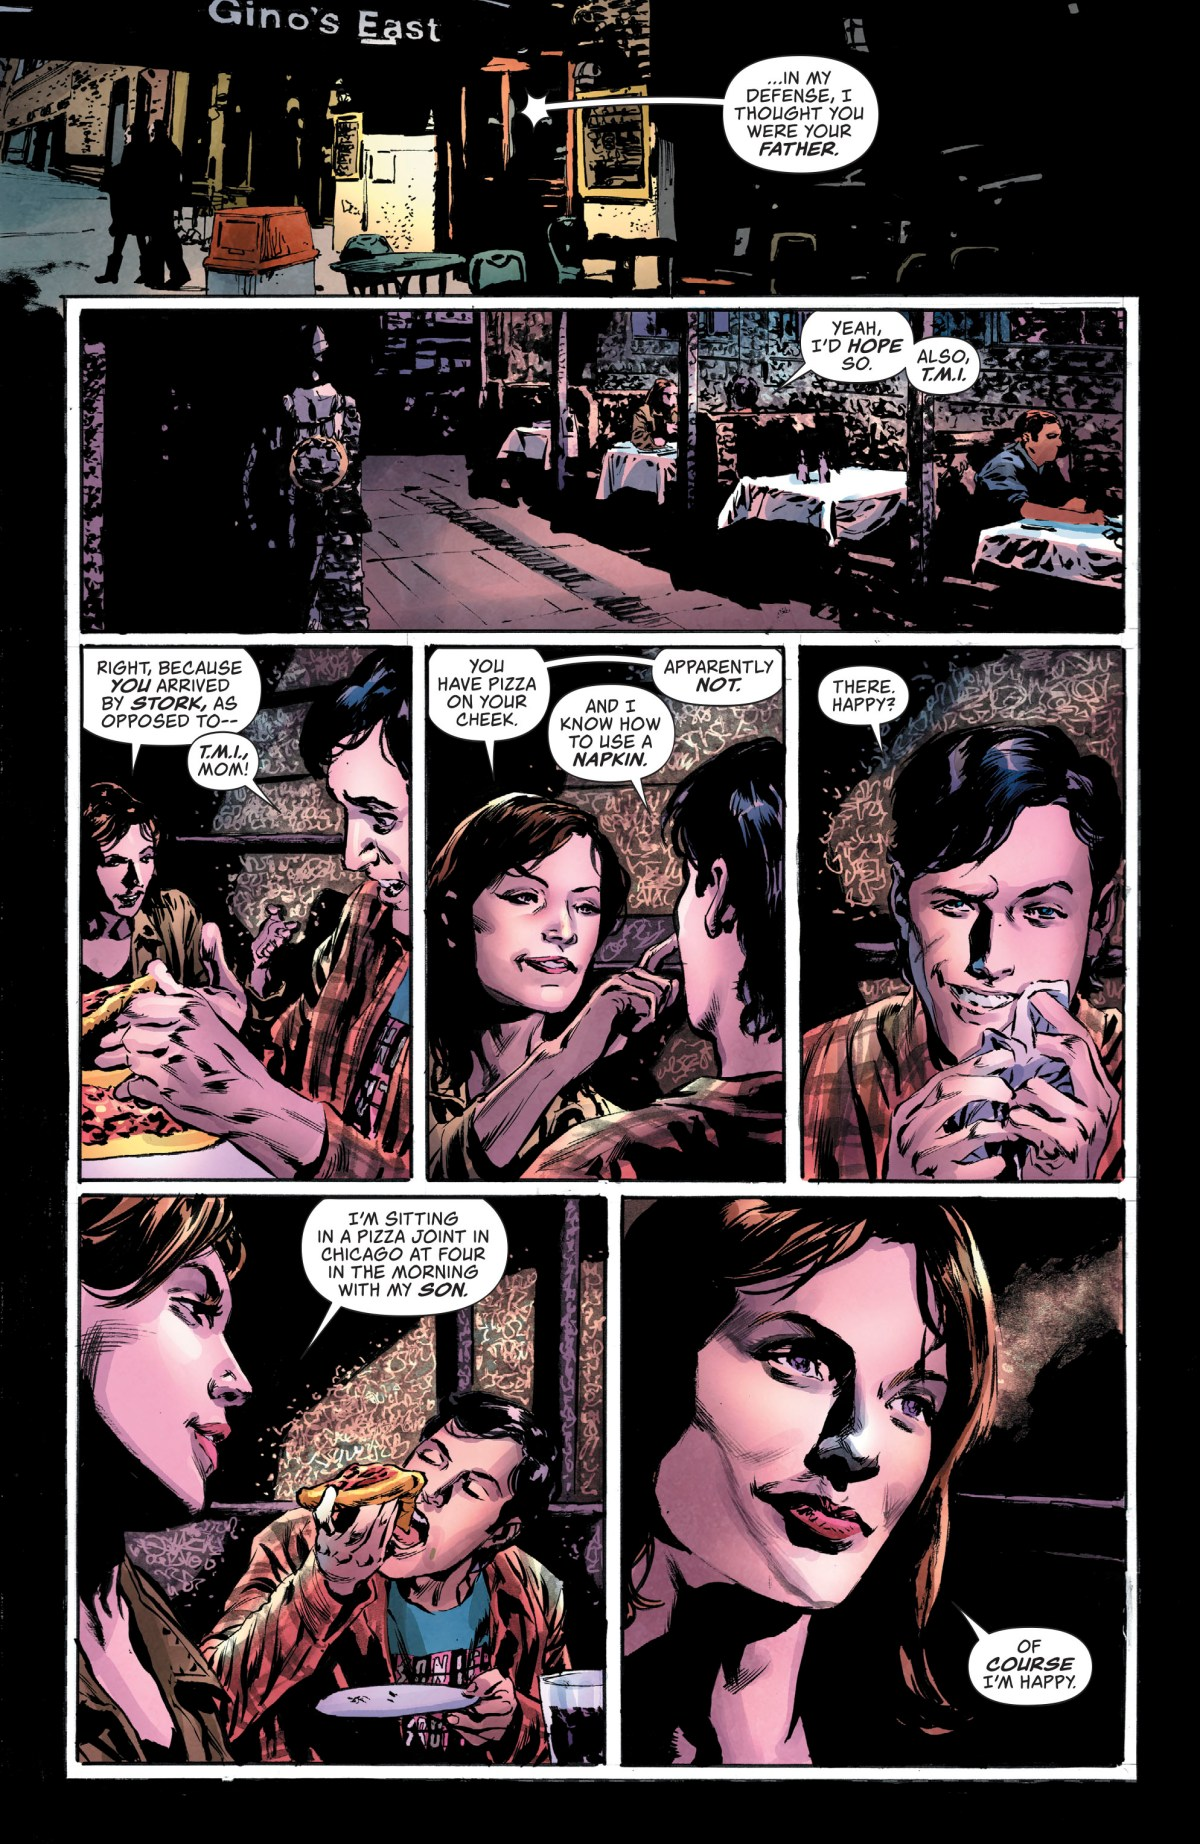 Lois talks to her son in Lois Lane #4.